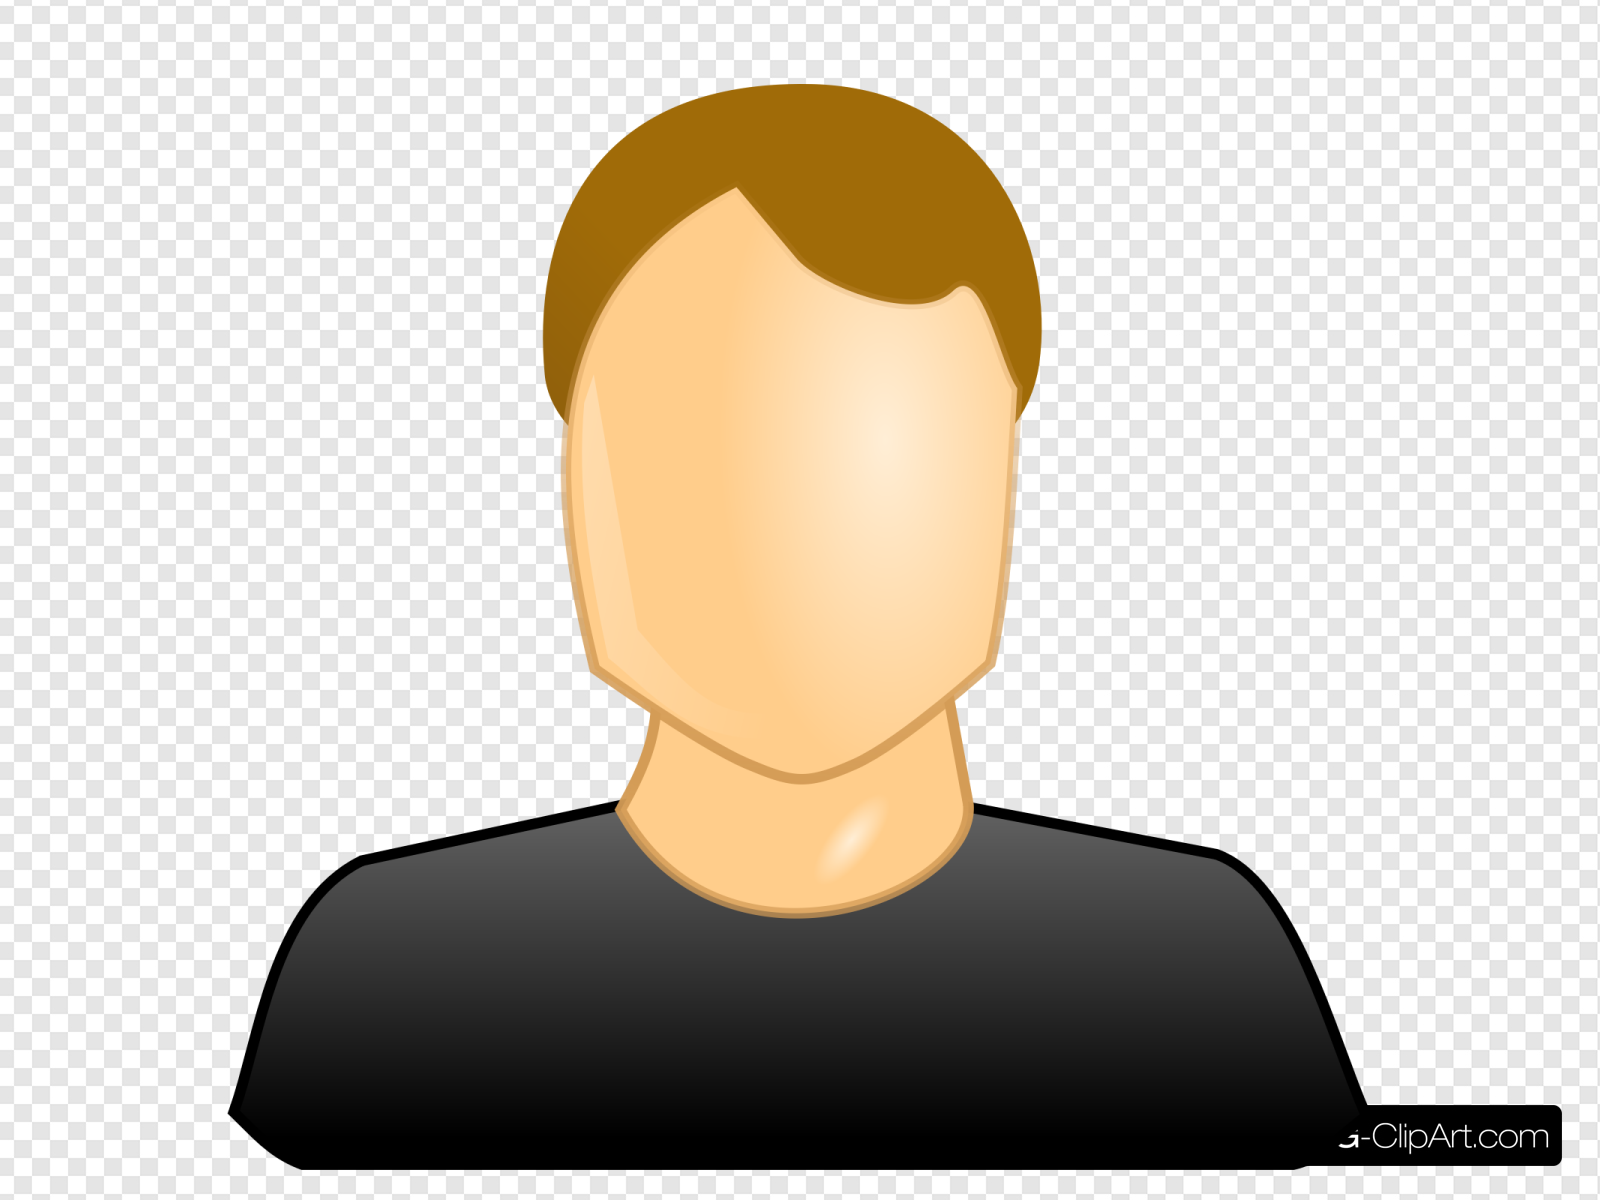 Man Clip art, Icon and SVG.